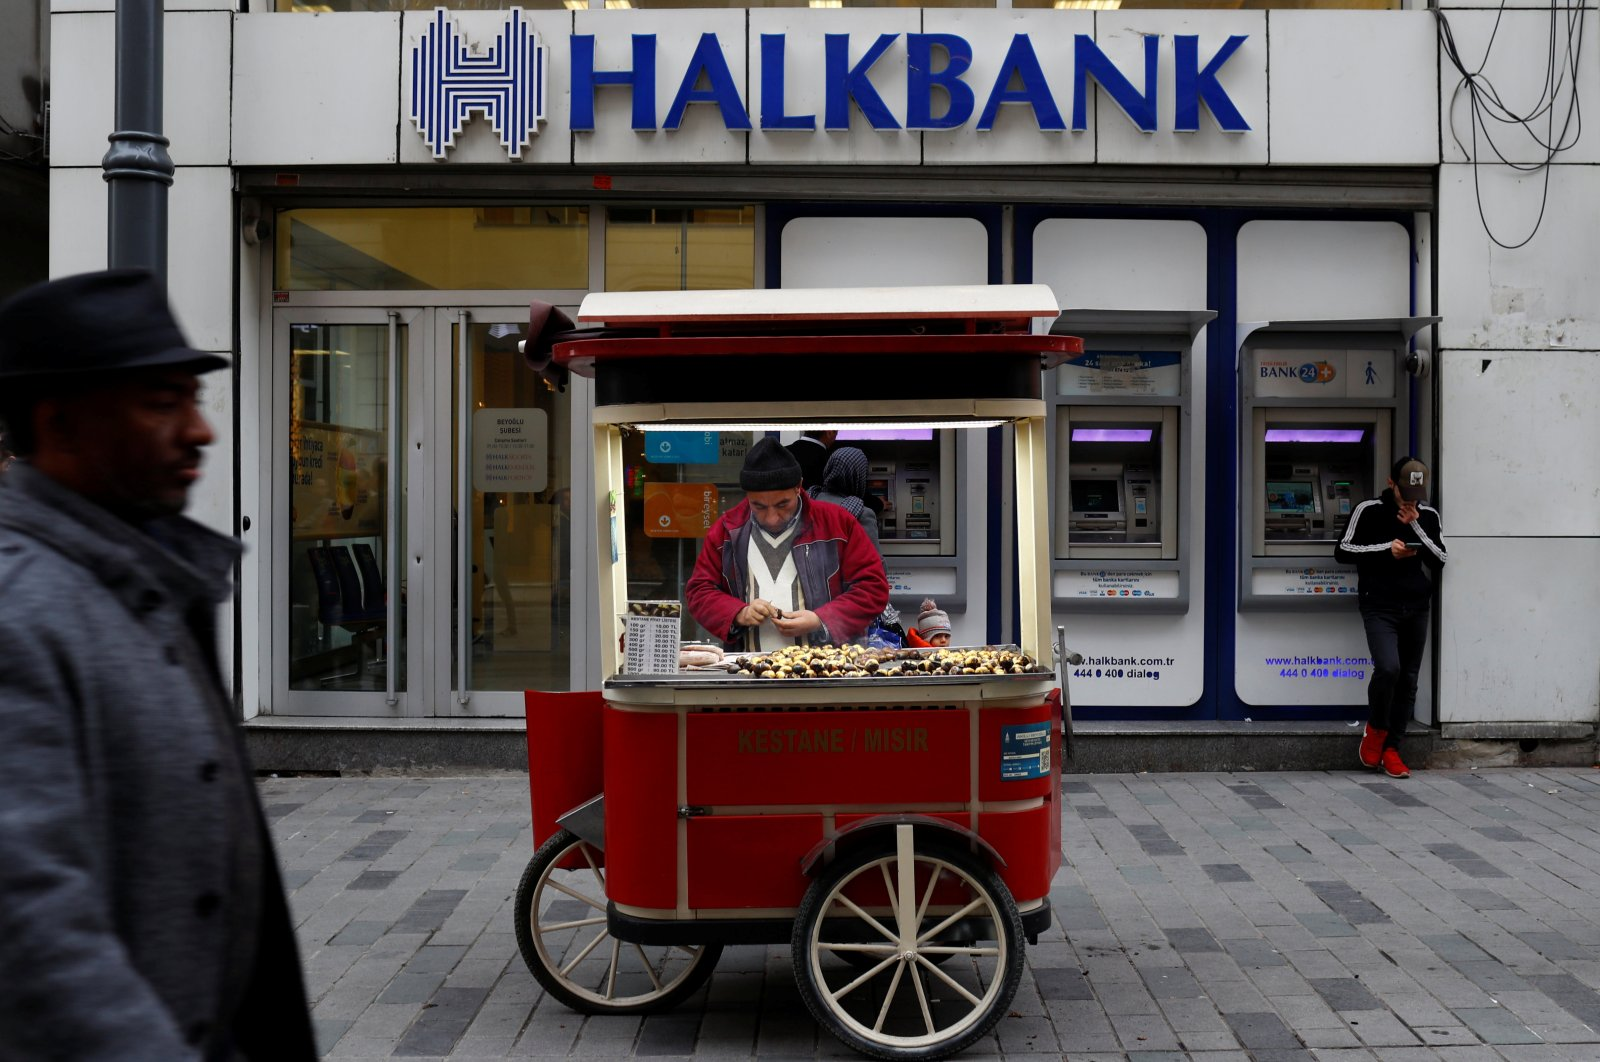 A street vendor sells roasted chestnuts in front of a branch of Halkbank in central Istanbul, Turkey, Jan. 10, 2018. (Reuters Photo)